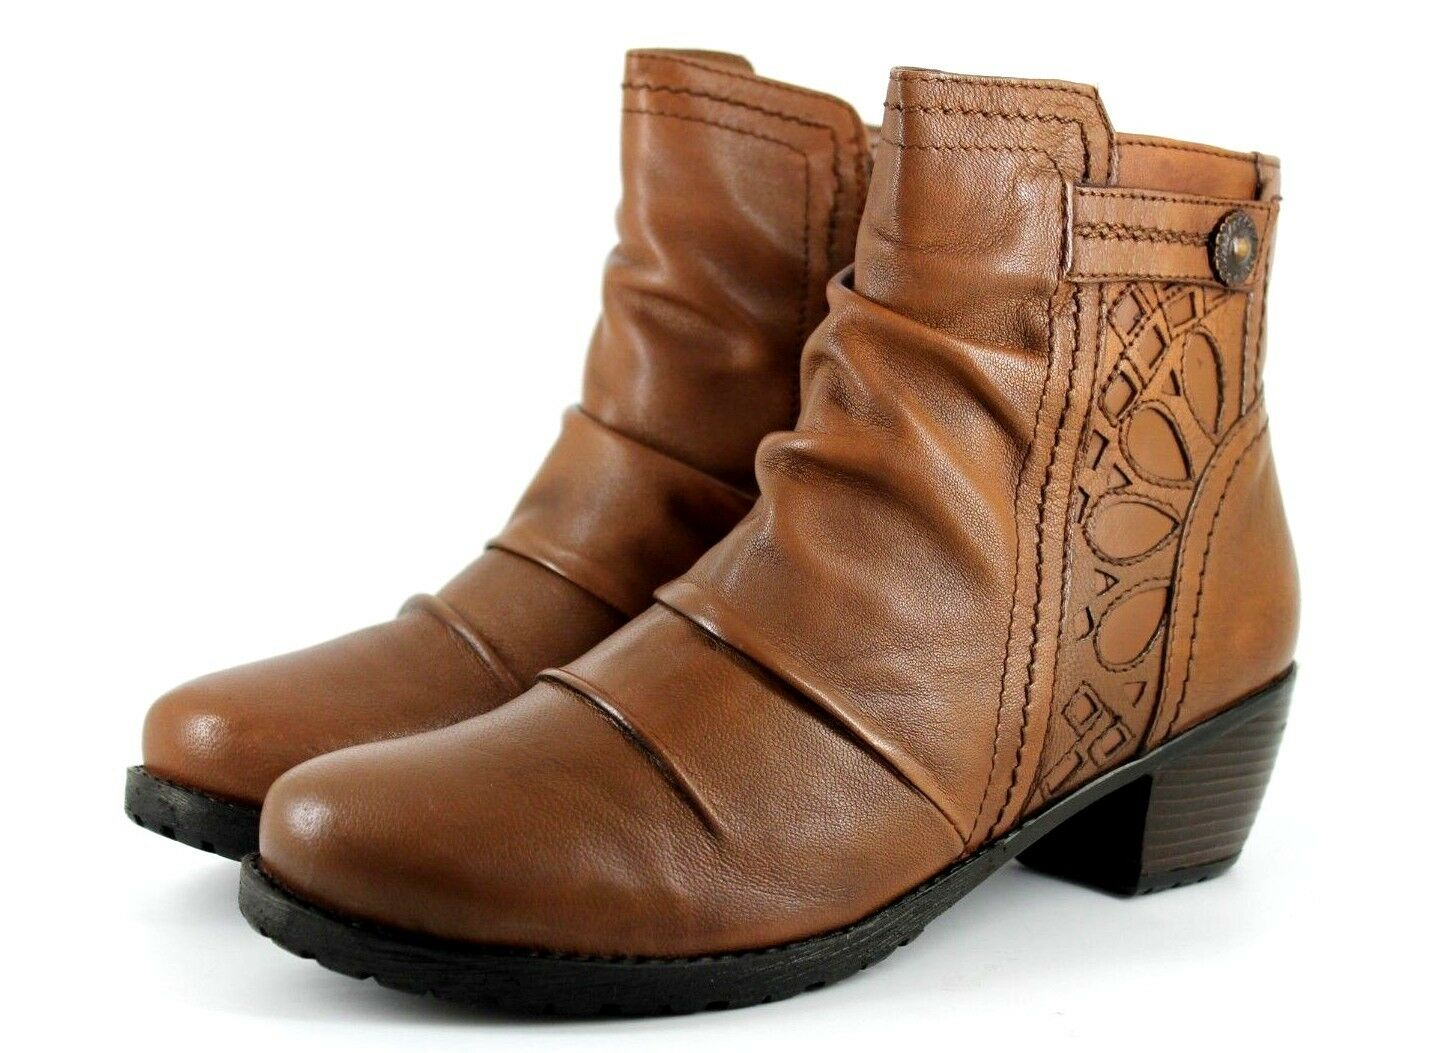 Lotus Maples damen UK 5 EU 38 Tan Leather Zip Up Casual Ankle Stiefel - Marked